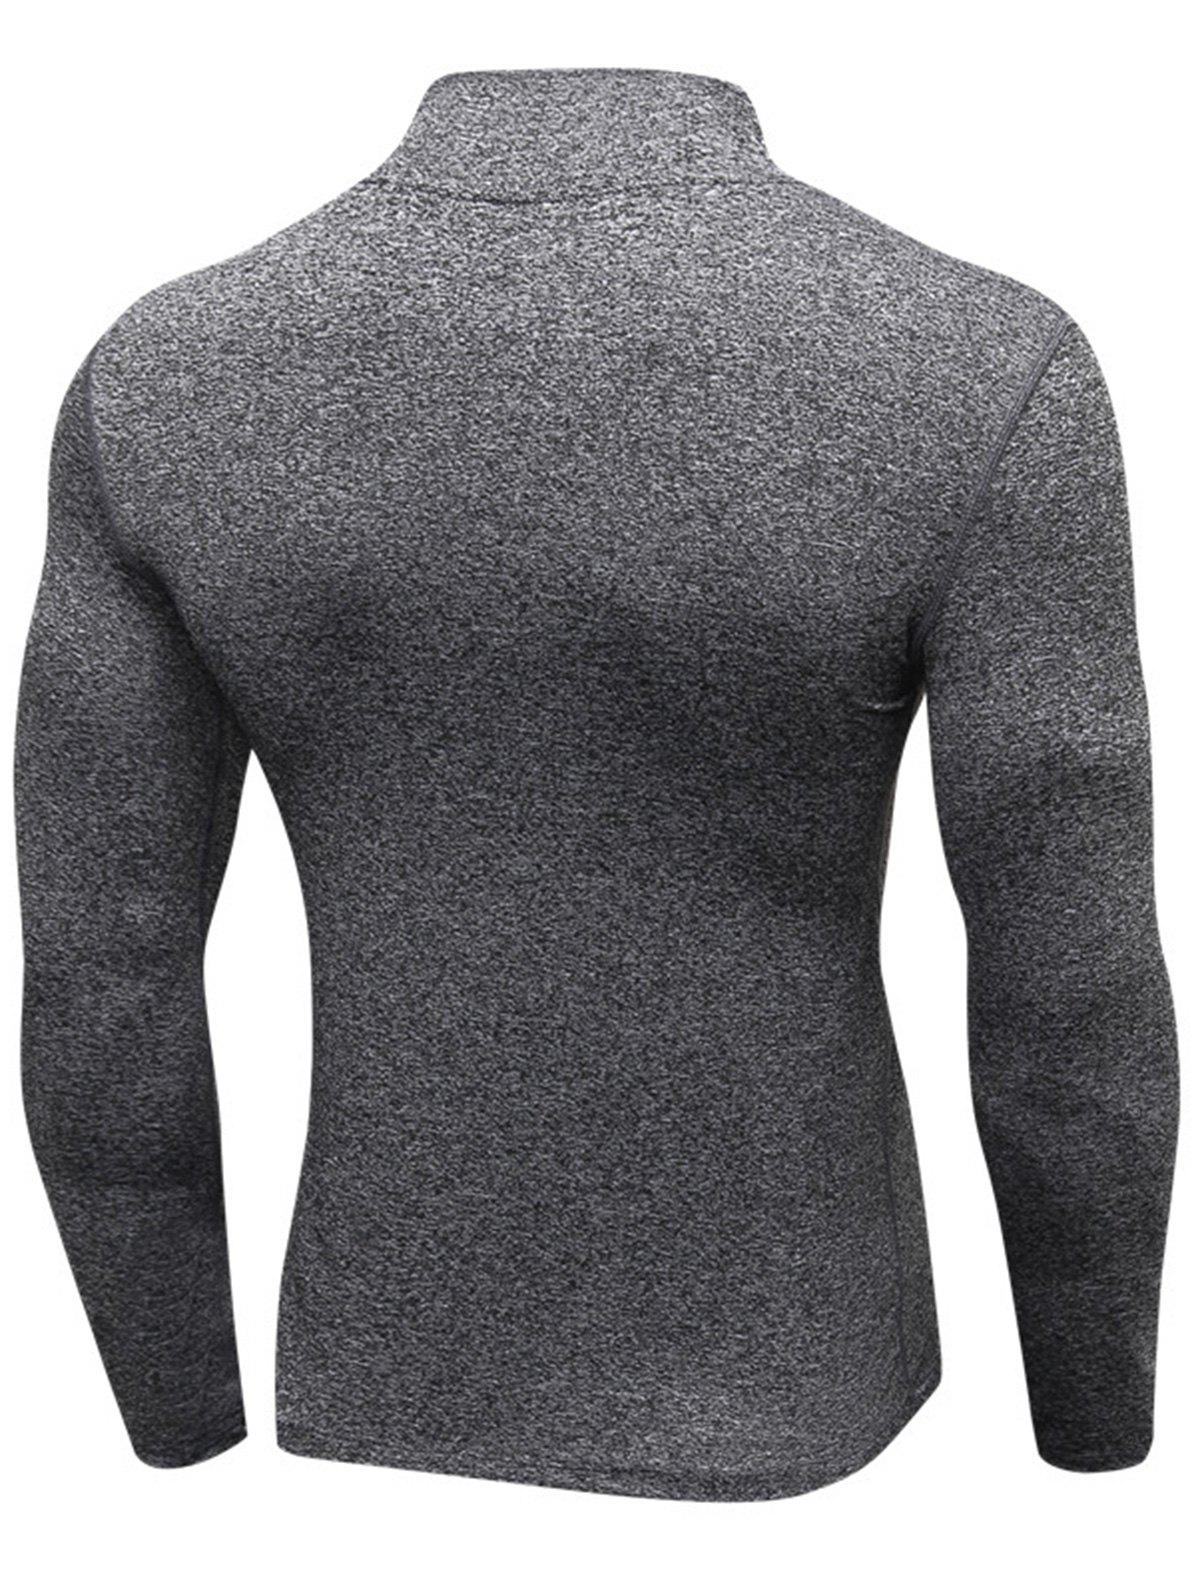 Quick Dry Stand Collar Half Zip Stretchy T-shirt - GRAY L